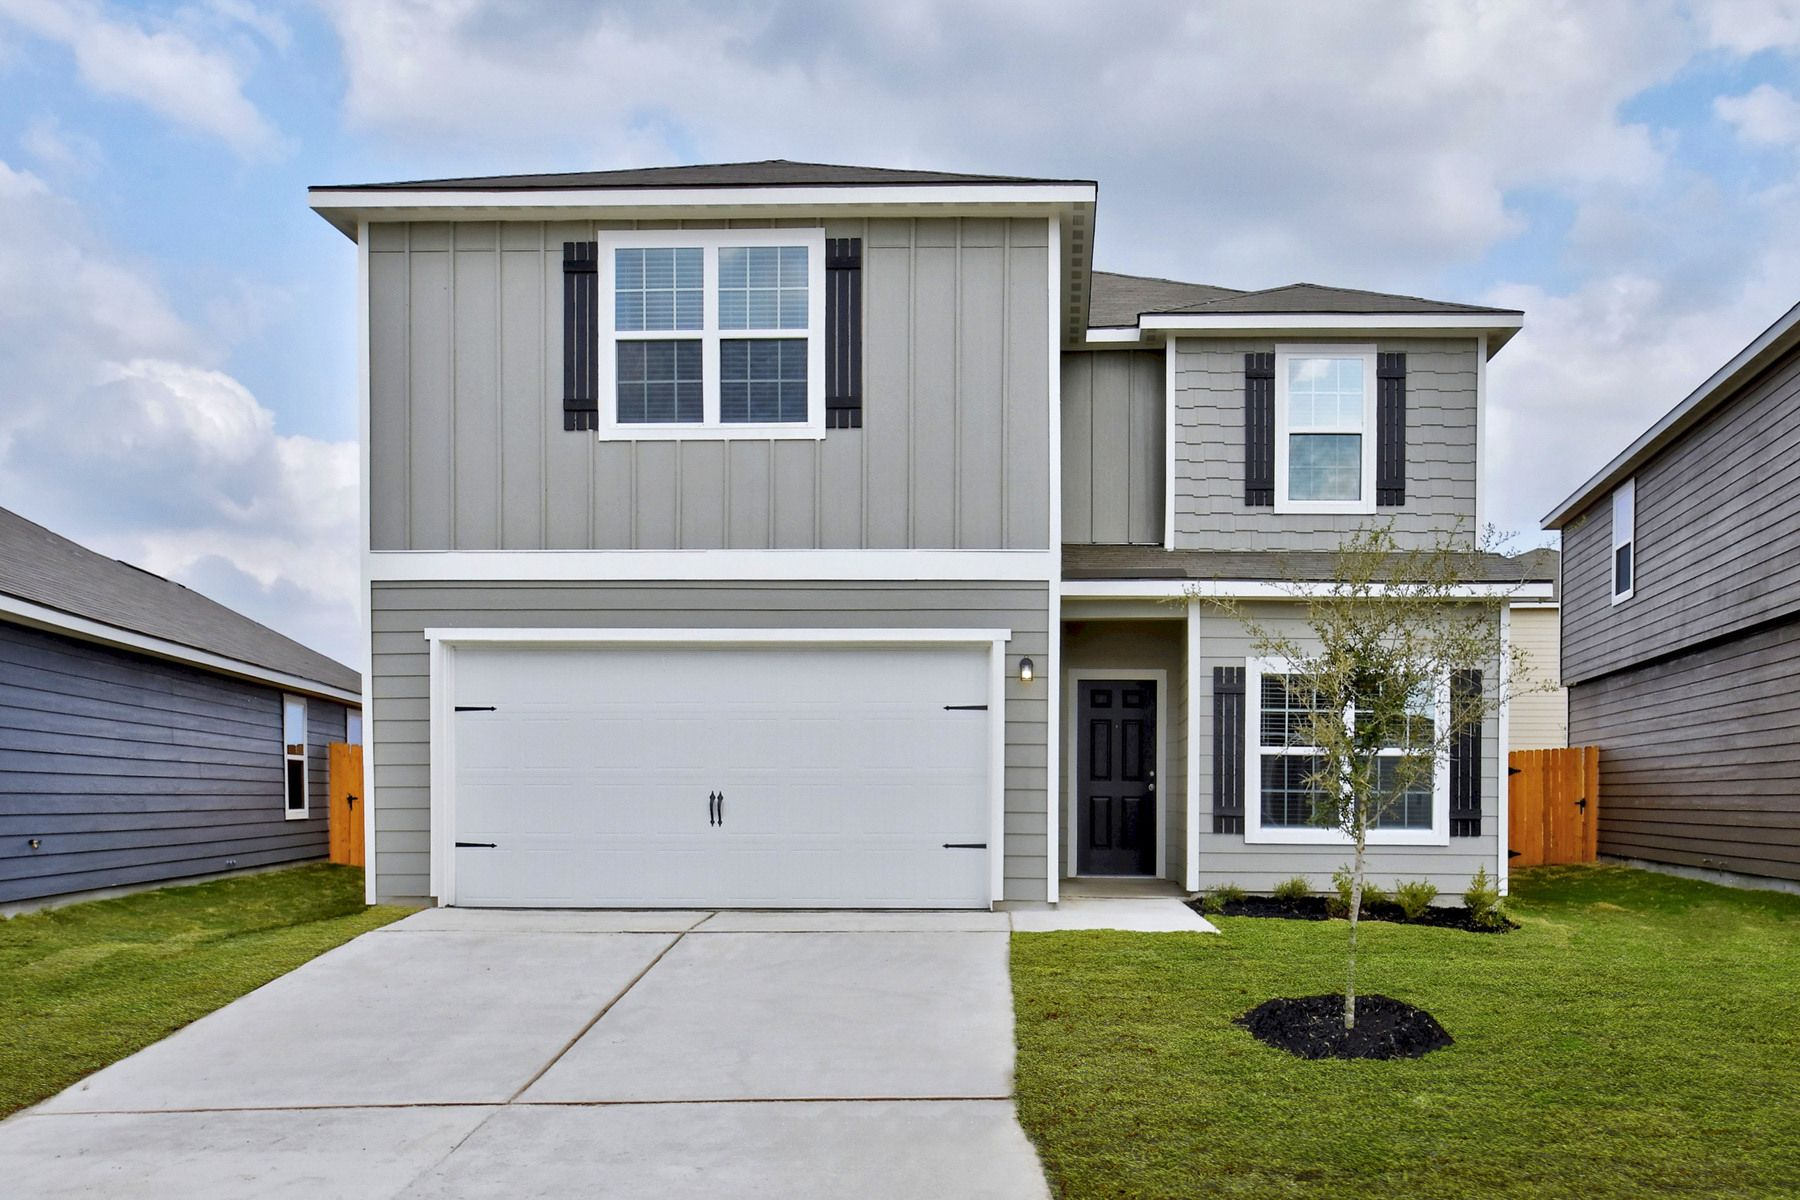 The Travis by LGI Homes:The Travis is a spacious two-story home at Savannah Place.